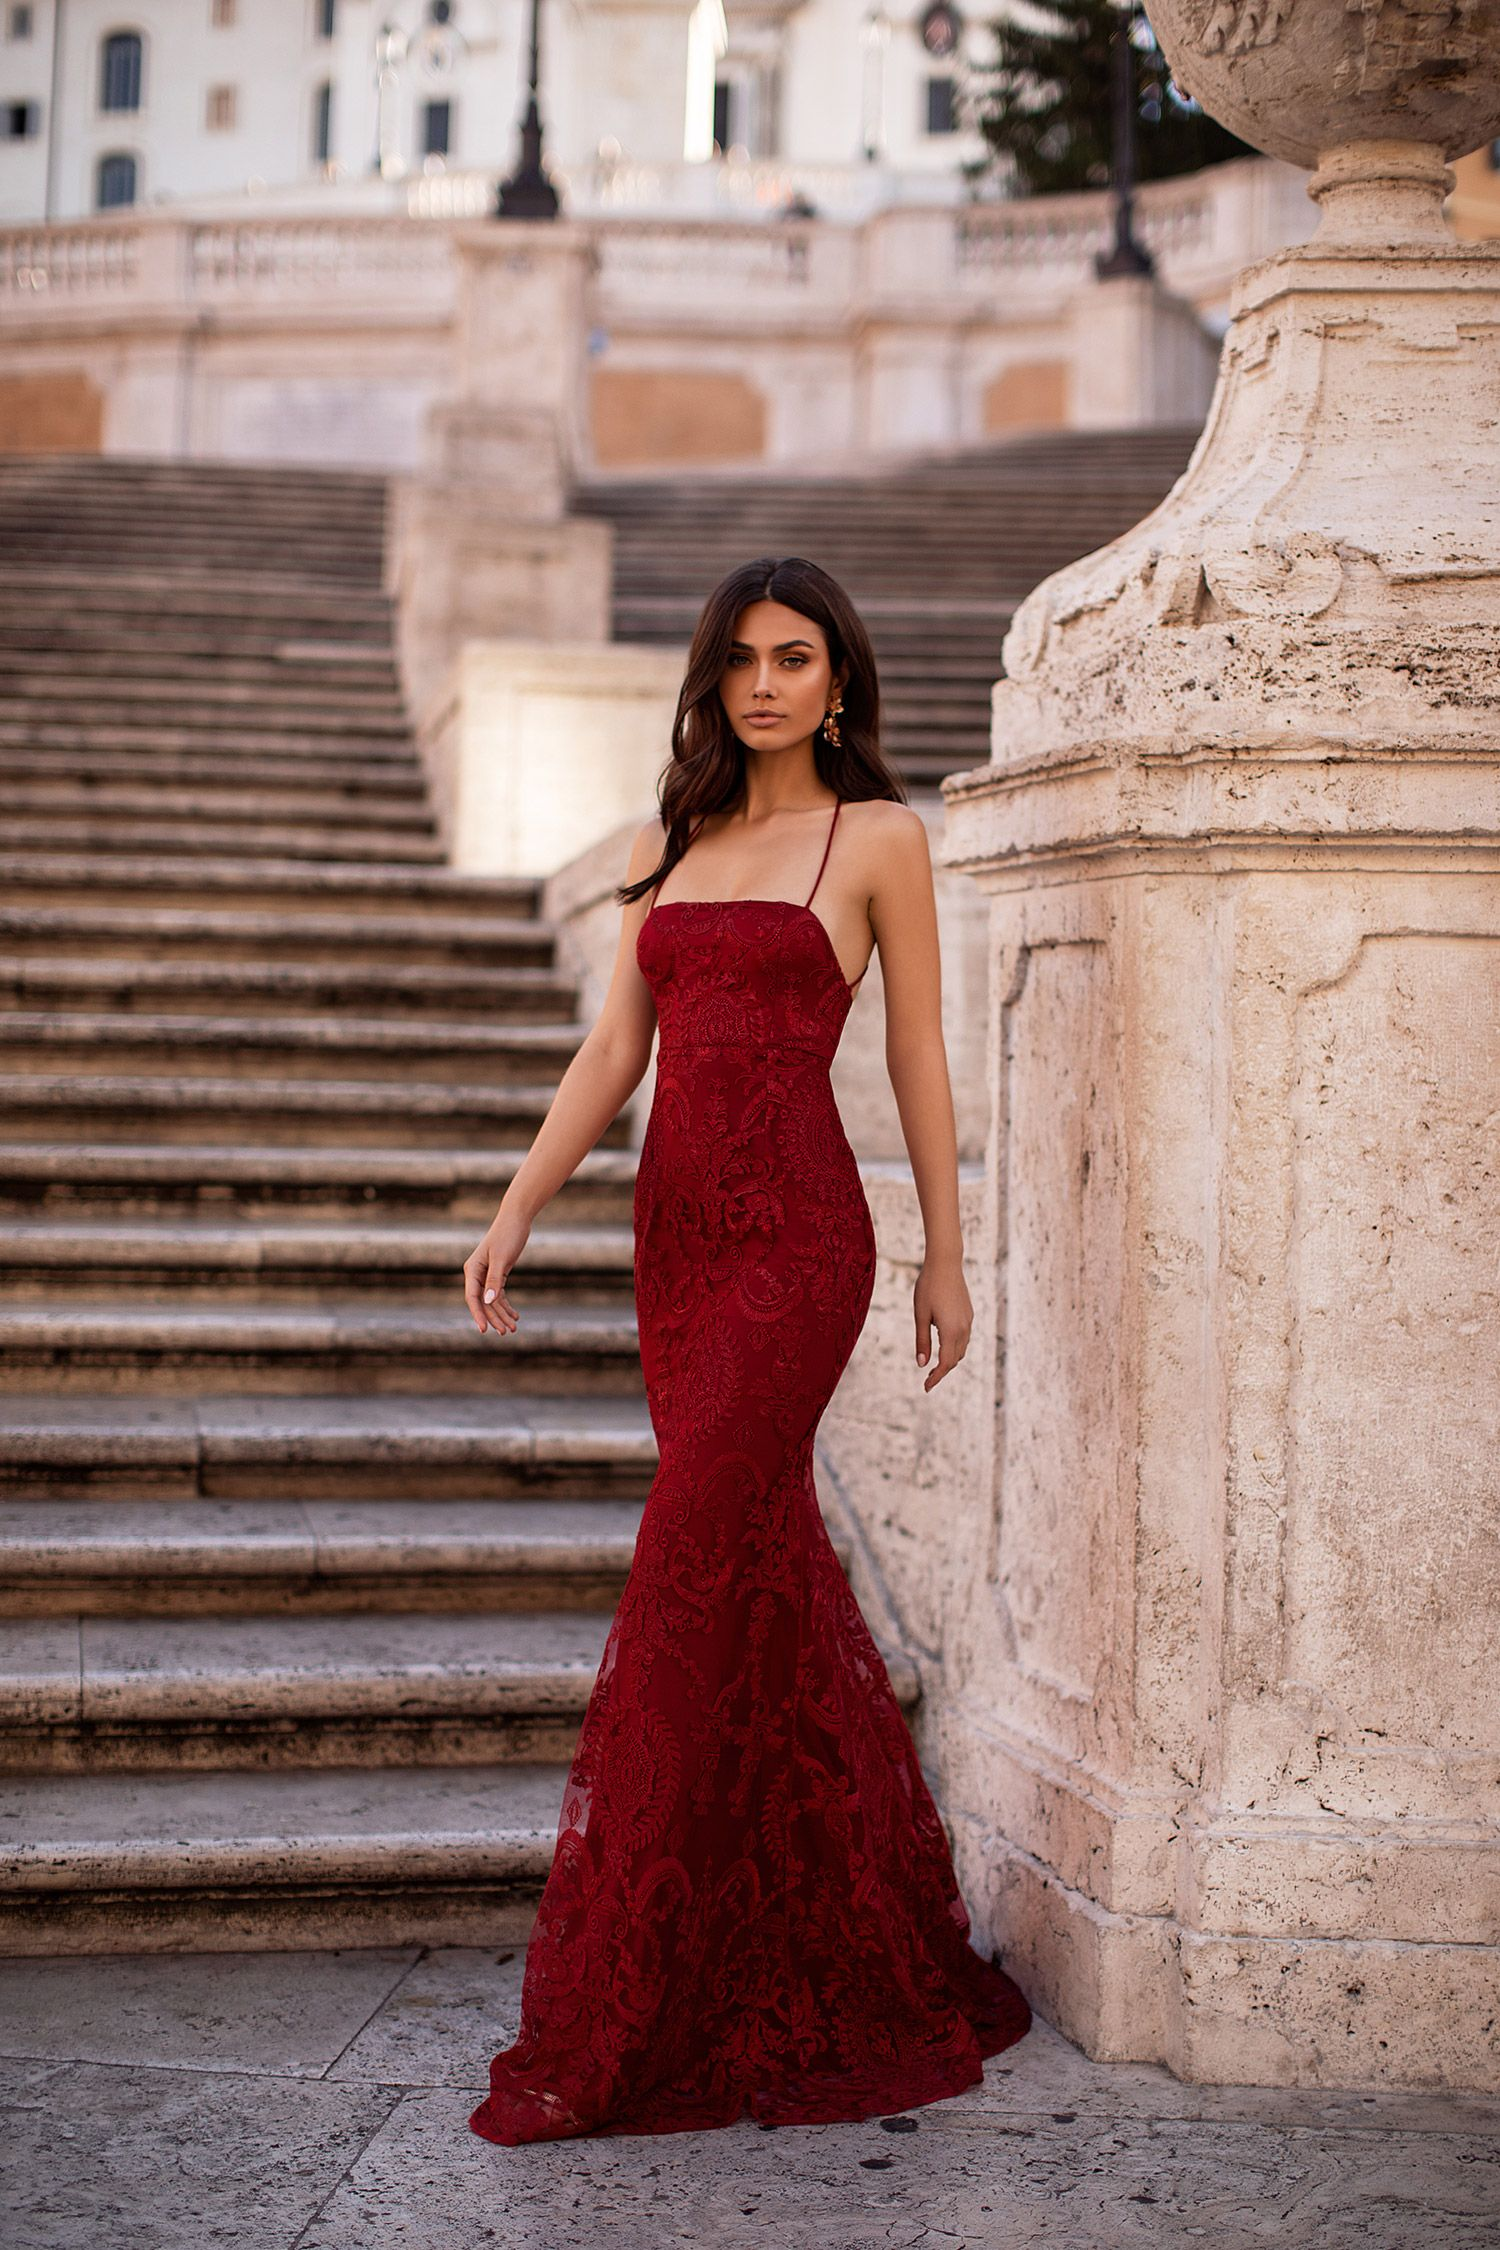 Alessandra Wine Red Red Dresses Classy Formal Dresses Classy Classy Gowns [ 2250 x 1500 Pixel ]